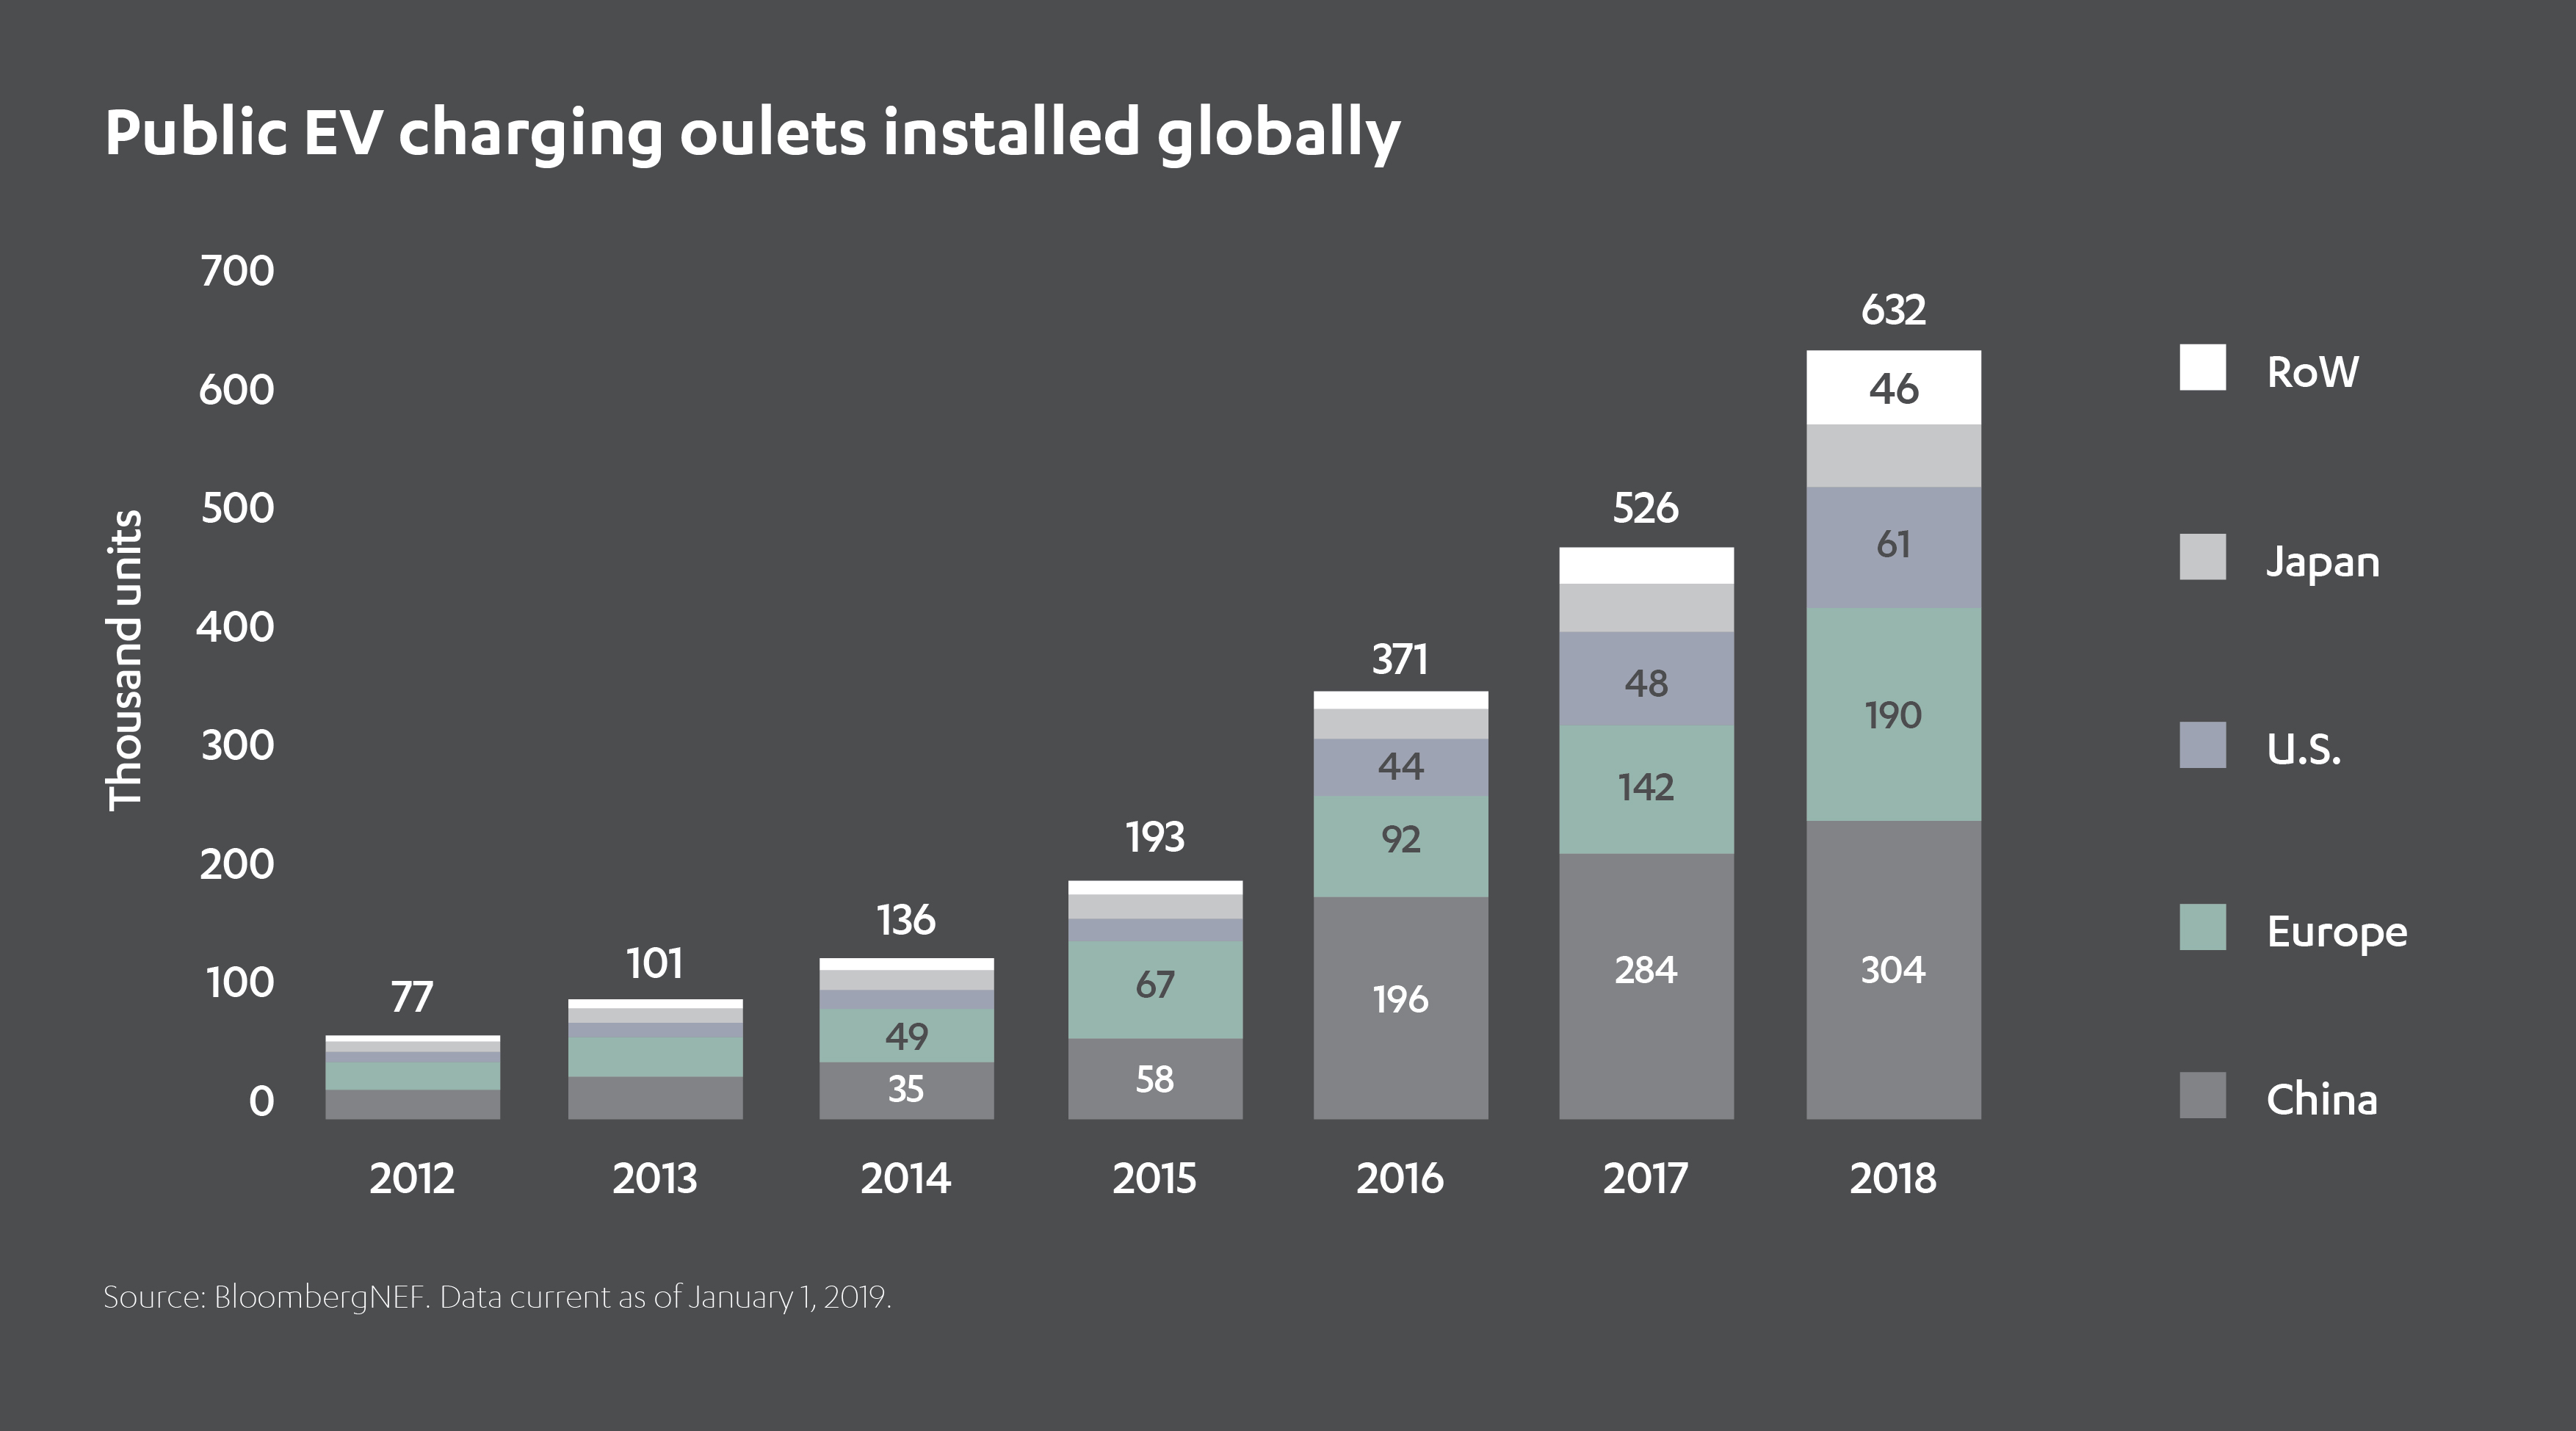 Public EV charging outlets installed globally